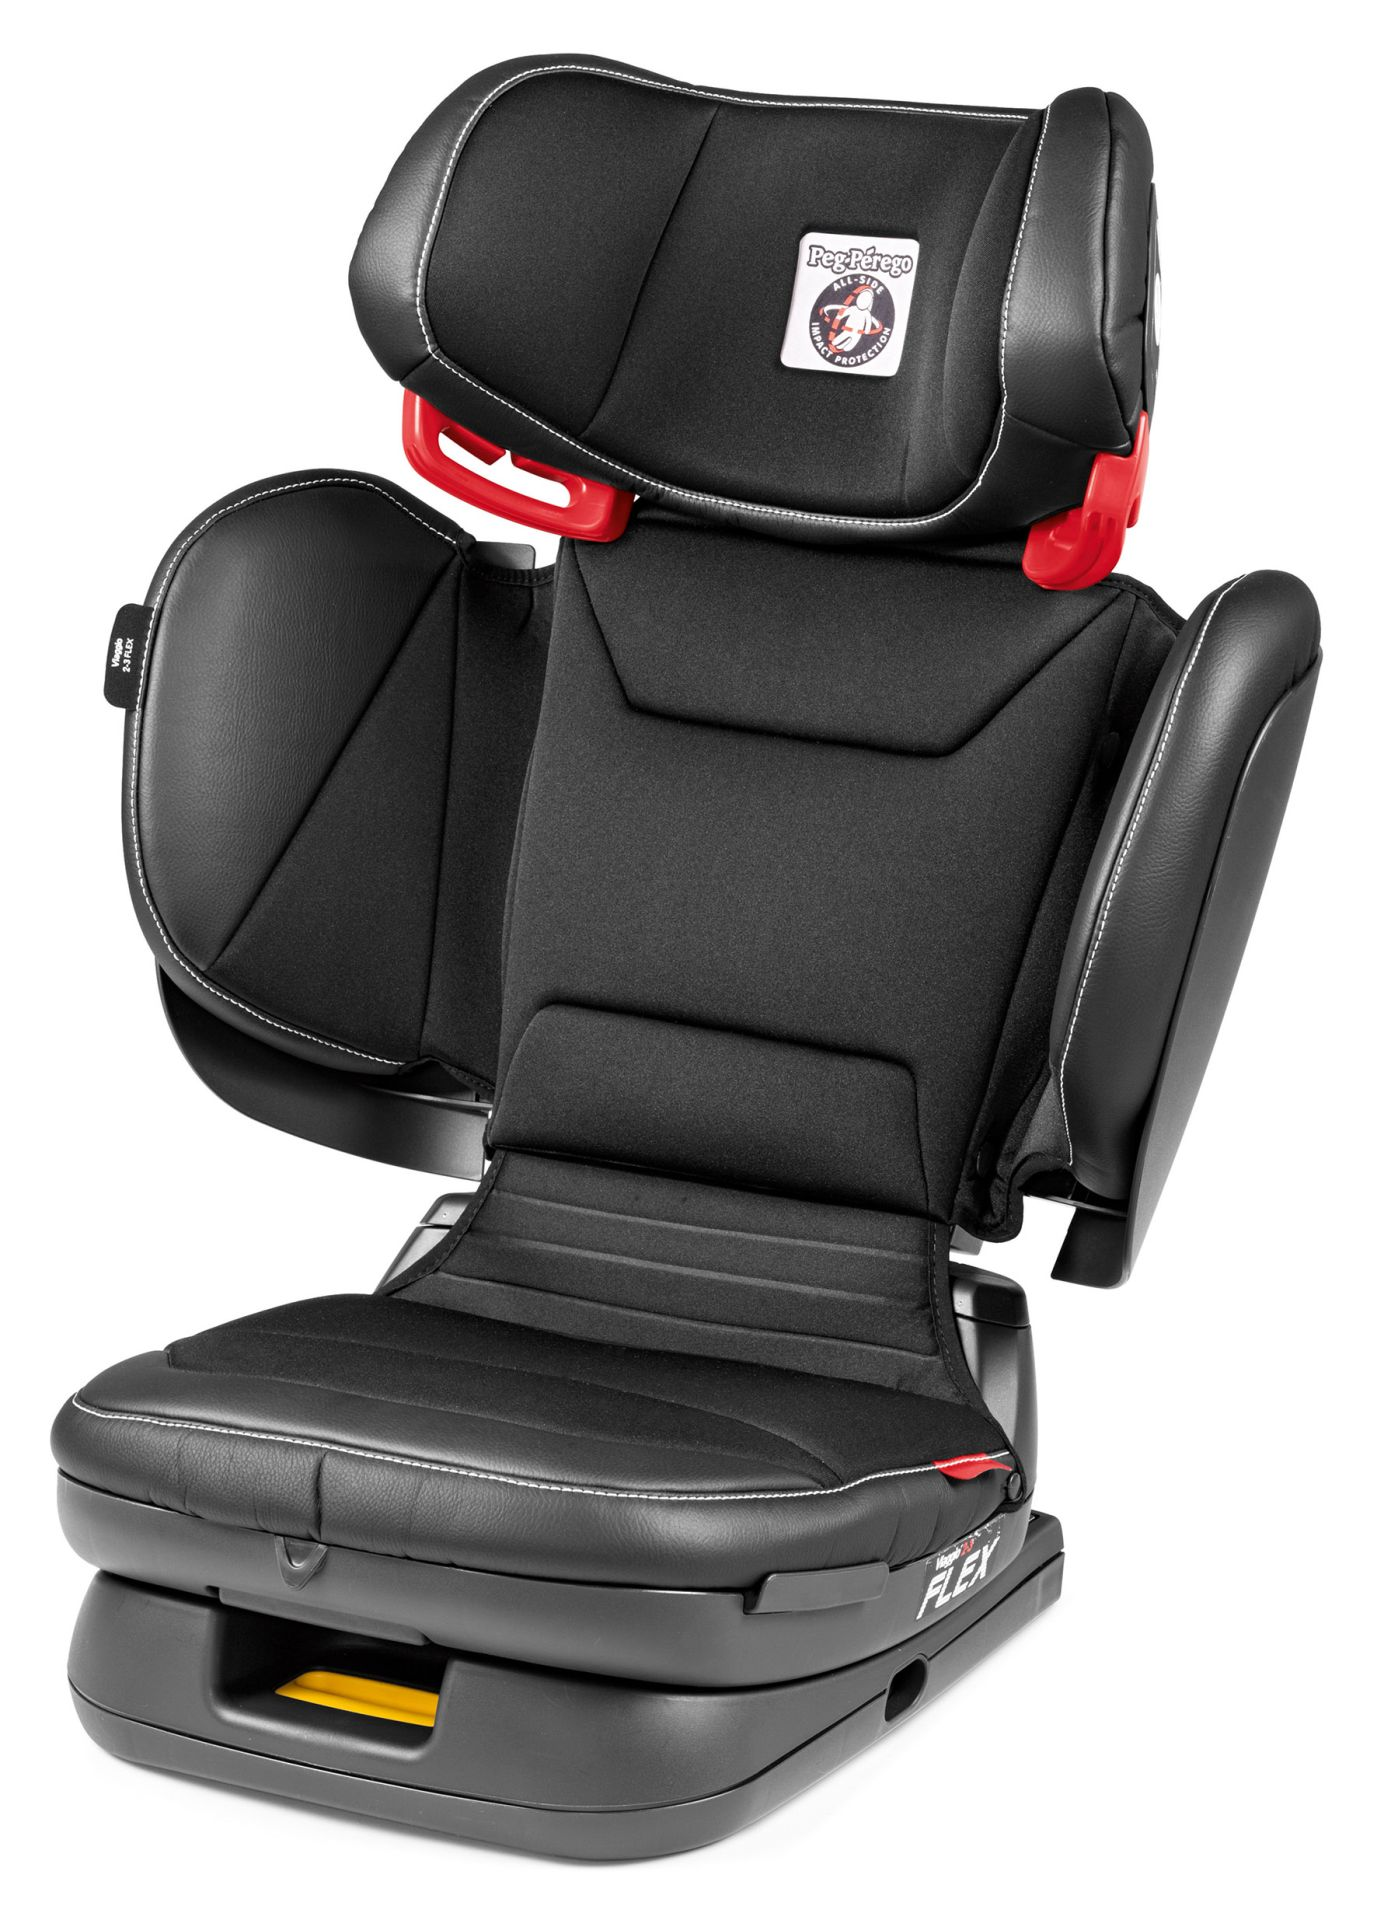 Peg Perego Car Seat Viaggio 2 3 Flex Licorice 2018